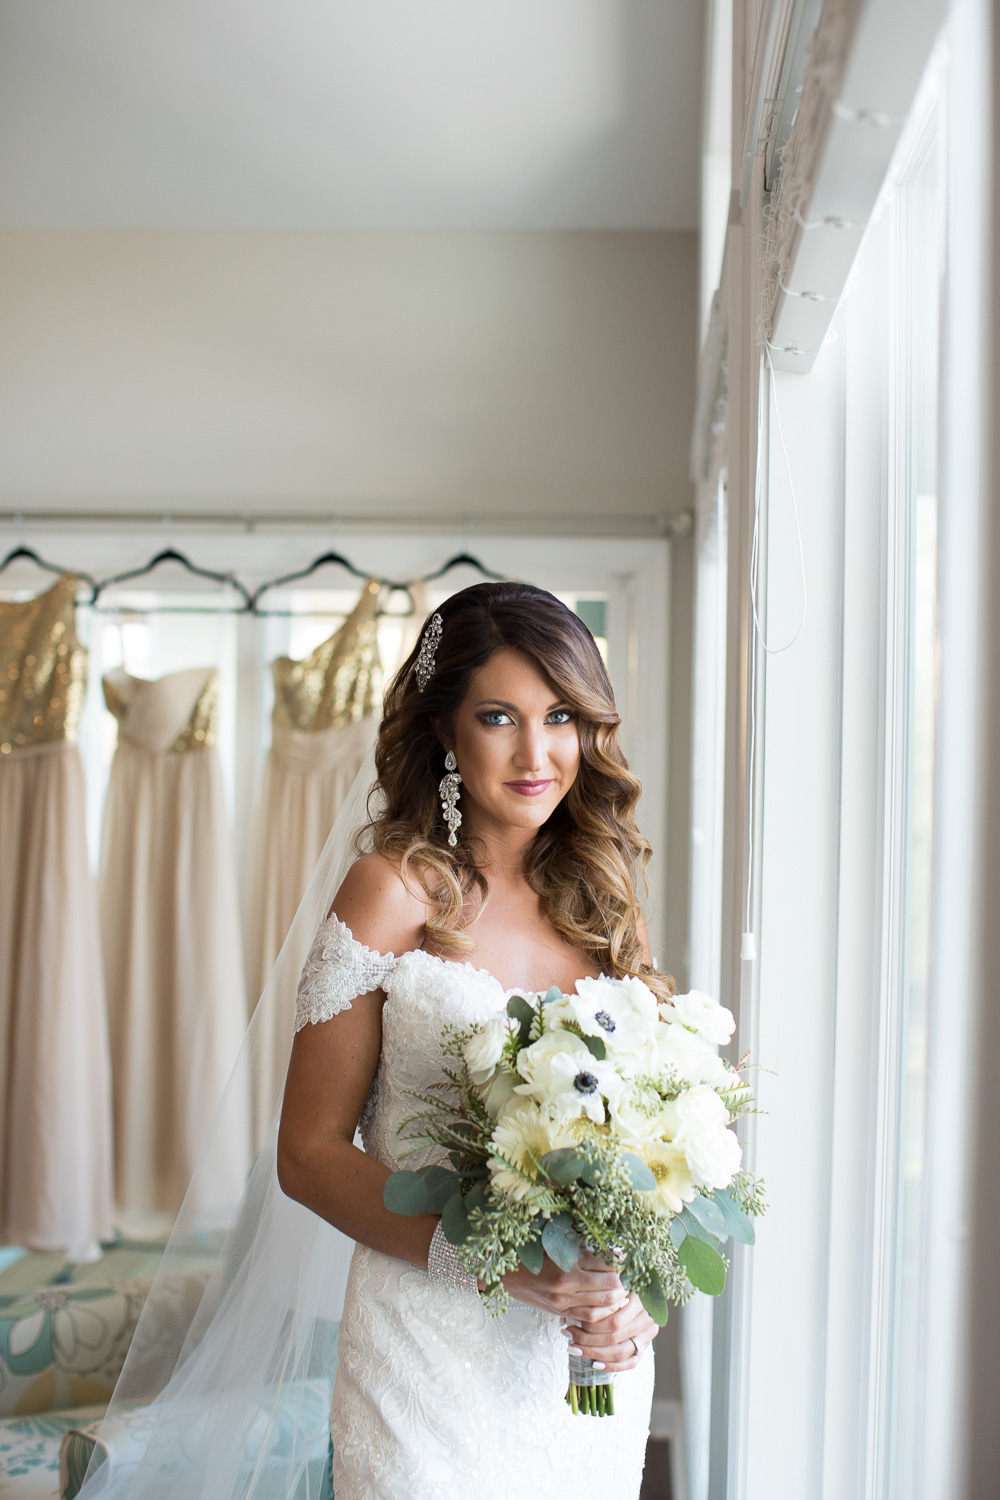 Her lovely bridal hair and makeup look was created by Hilari Forrester.